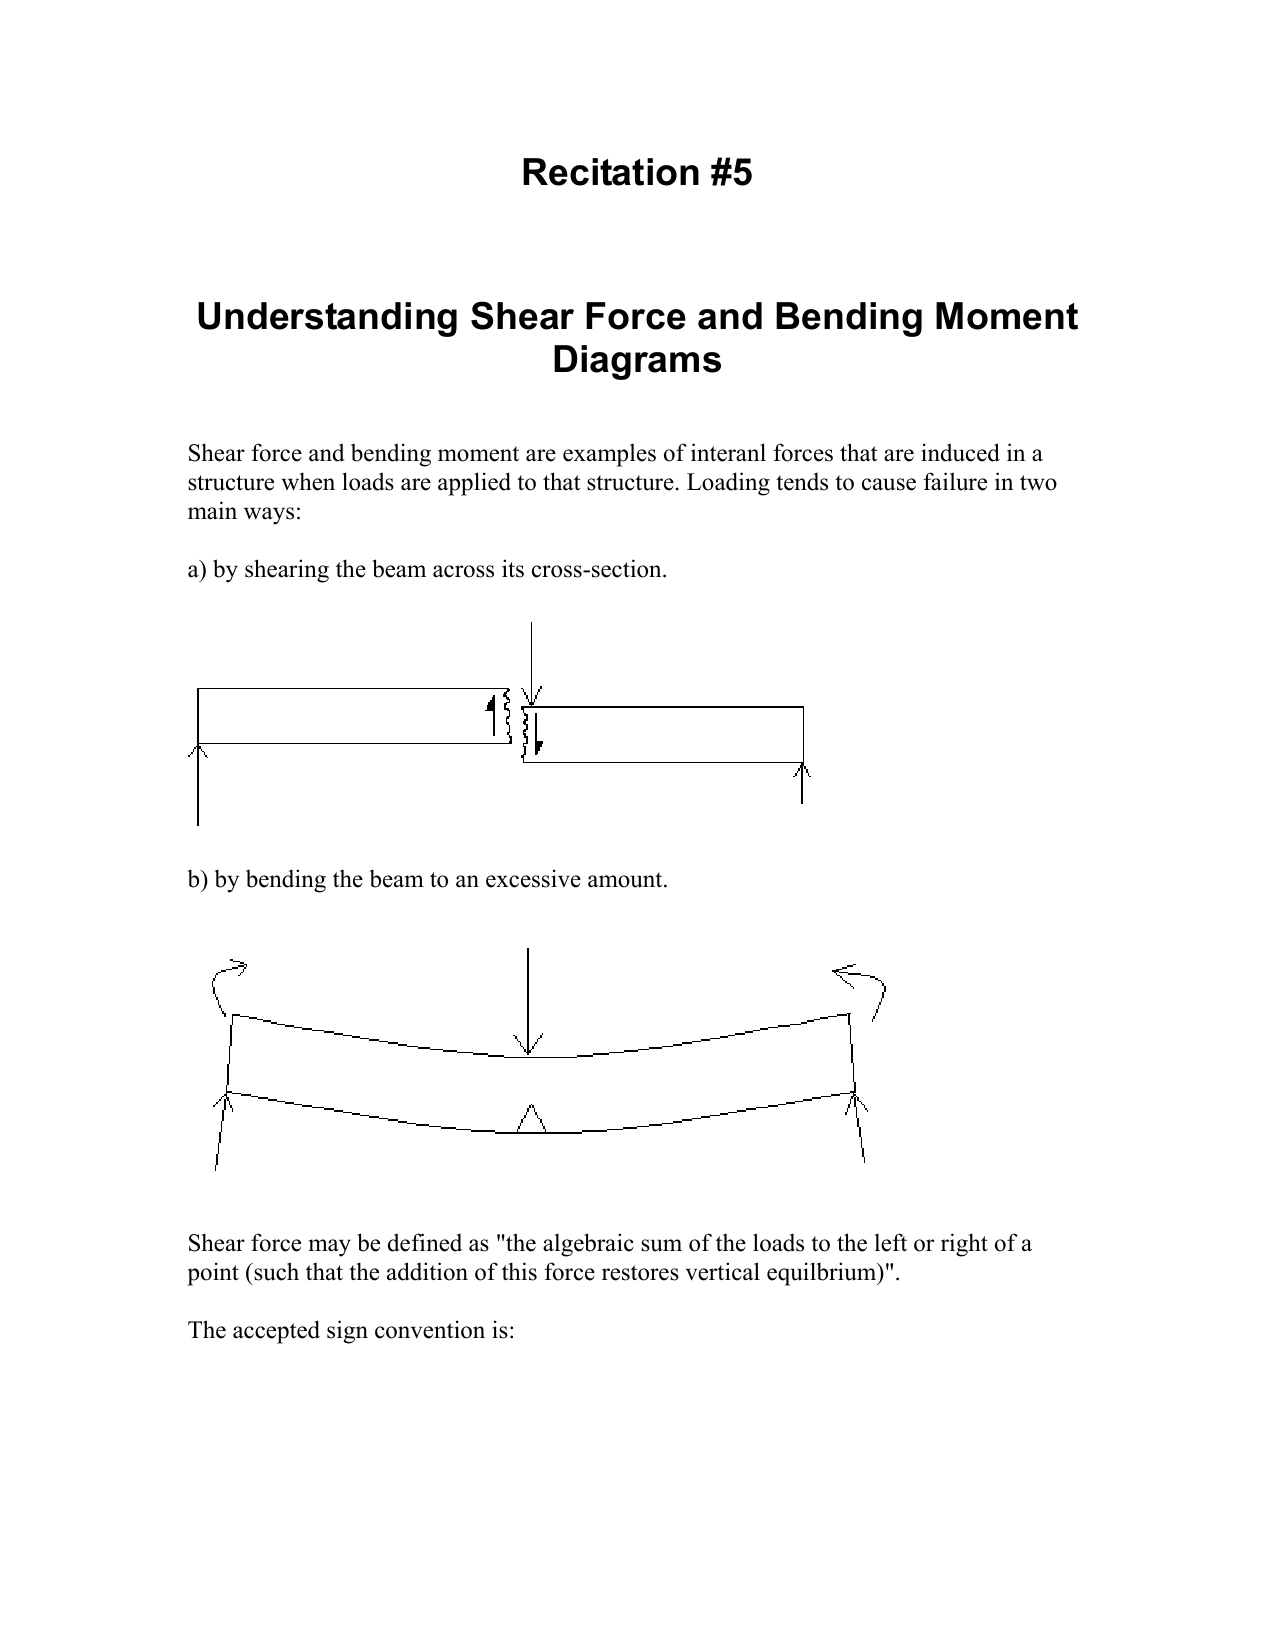 Recitation 5 Understanding Shear Force And Bending Moment Diagrams Draw For The Beam Shownin